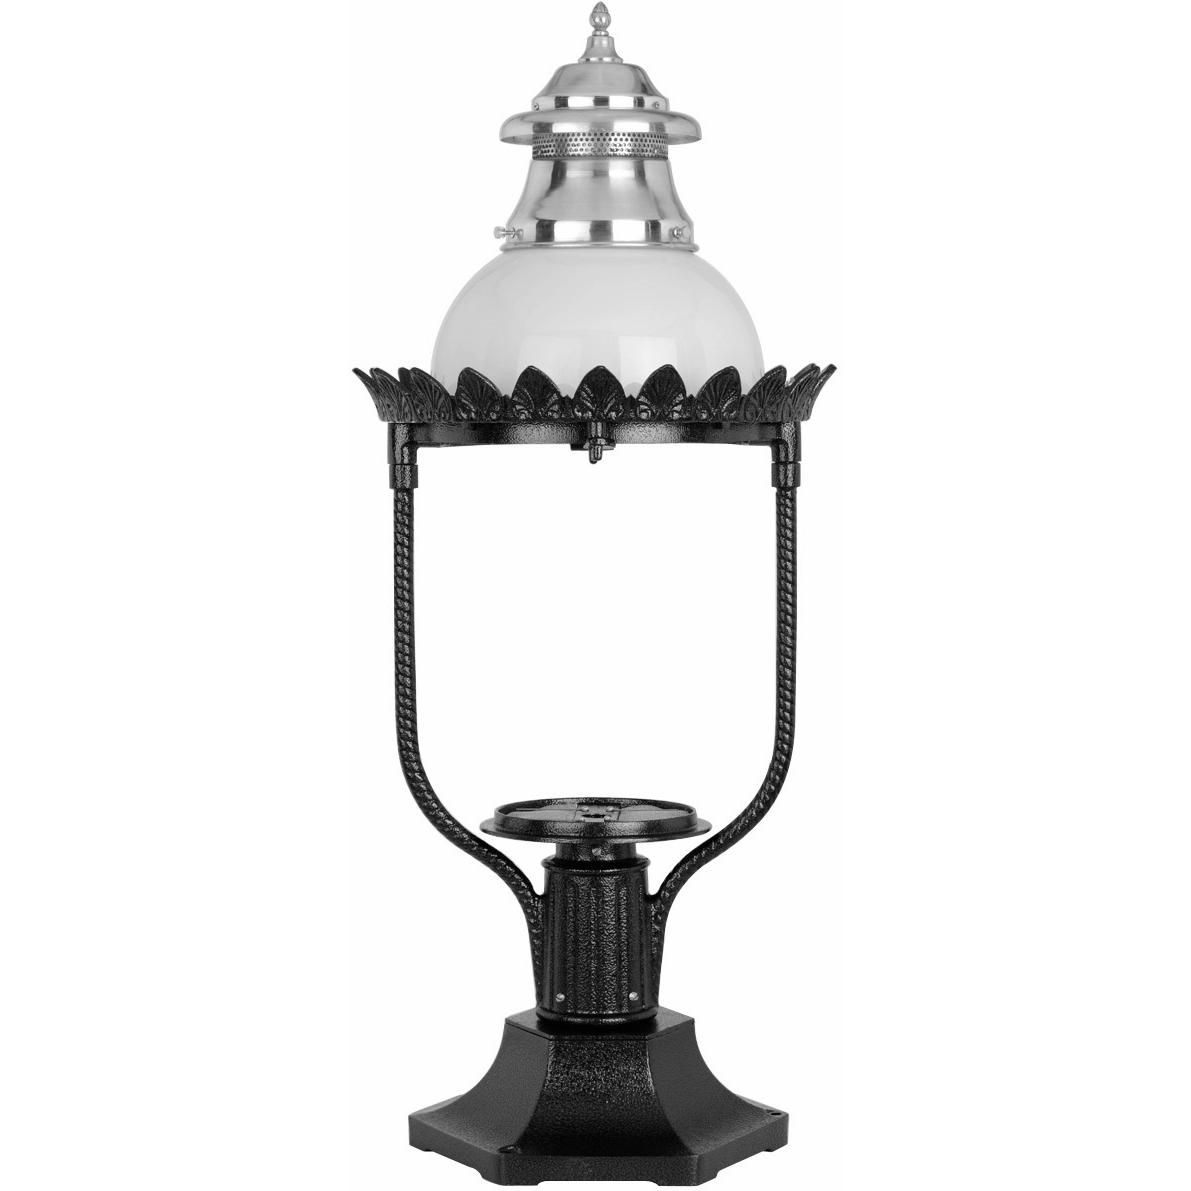 American Gas Lamp Works Gl48 Cast Aluminum Manual Ignition Natural Gas Light With Open Flame Burner And Pedestal Mount